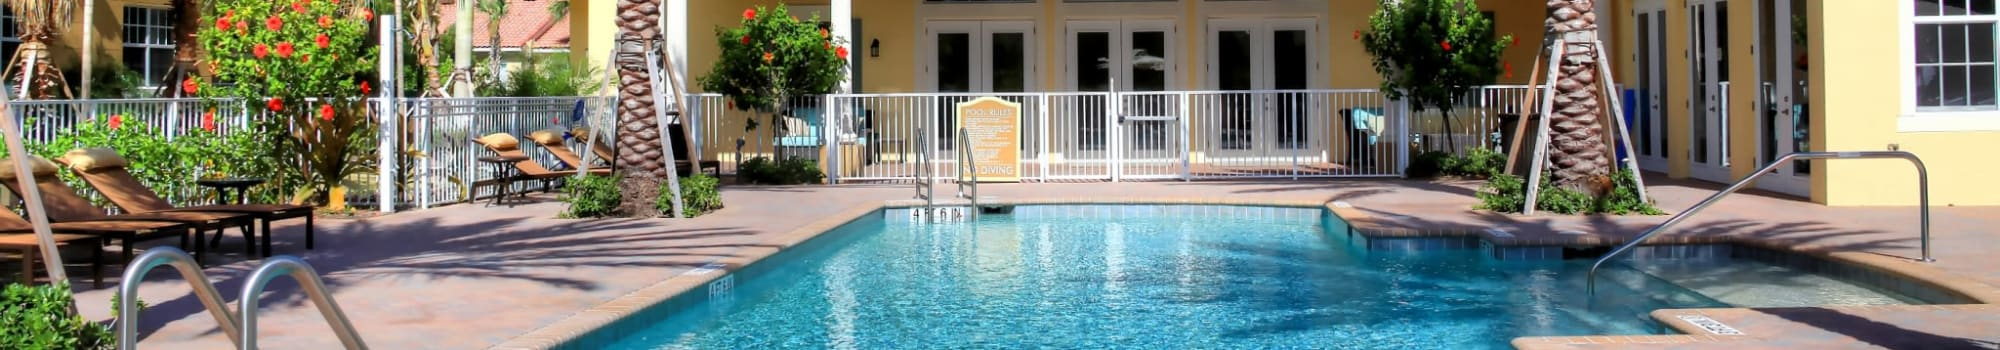 Life enrichment at Riverwalk Pointe in Jupiter, Florida